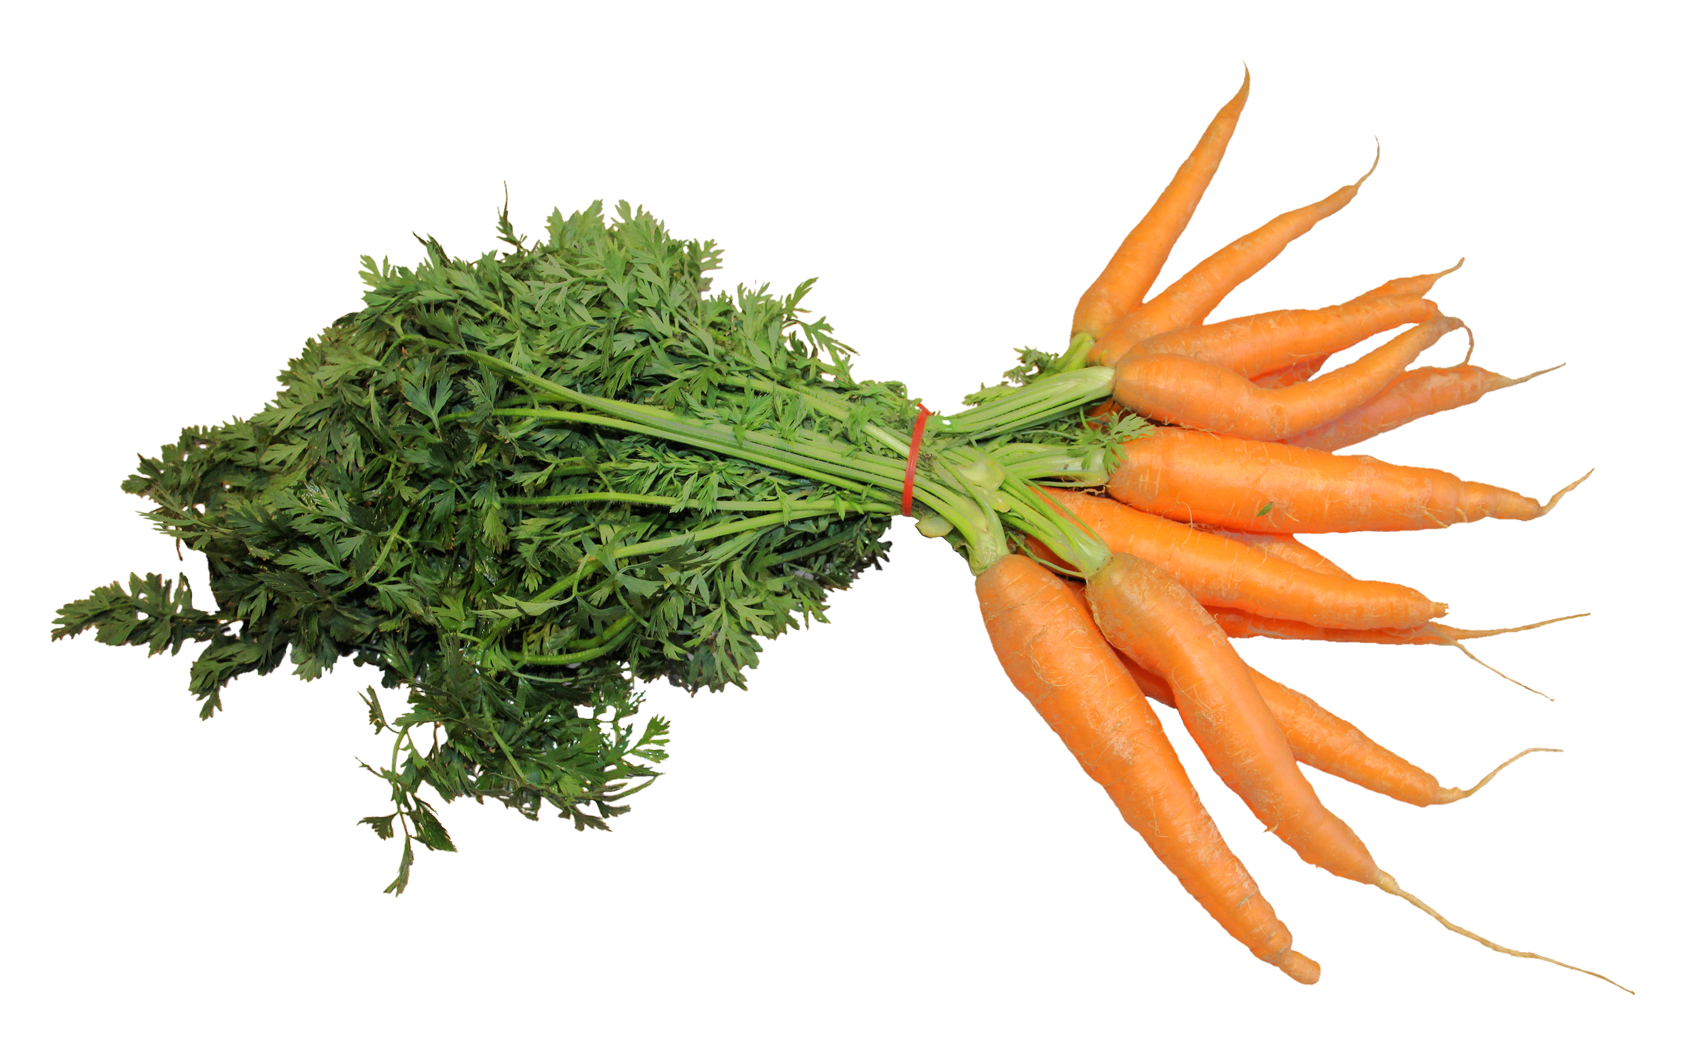 Carrot PNG - 19922